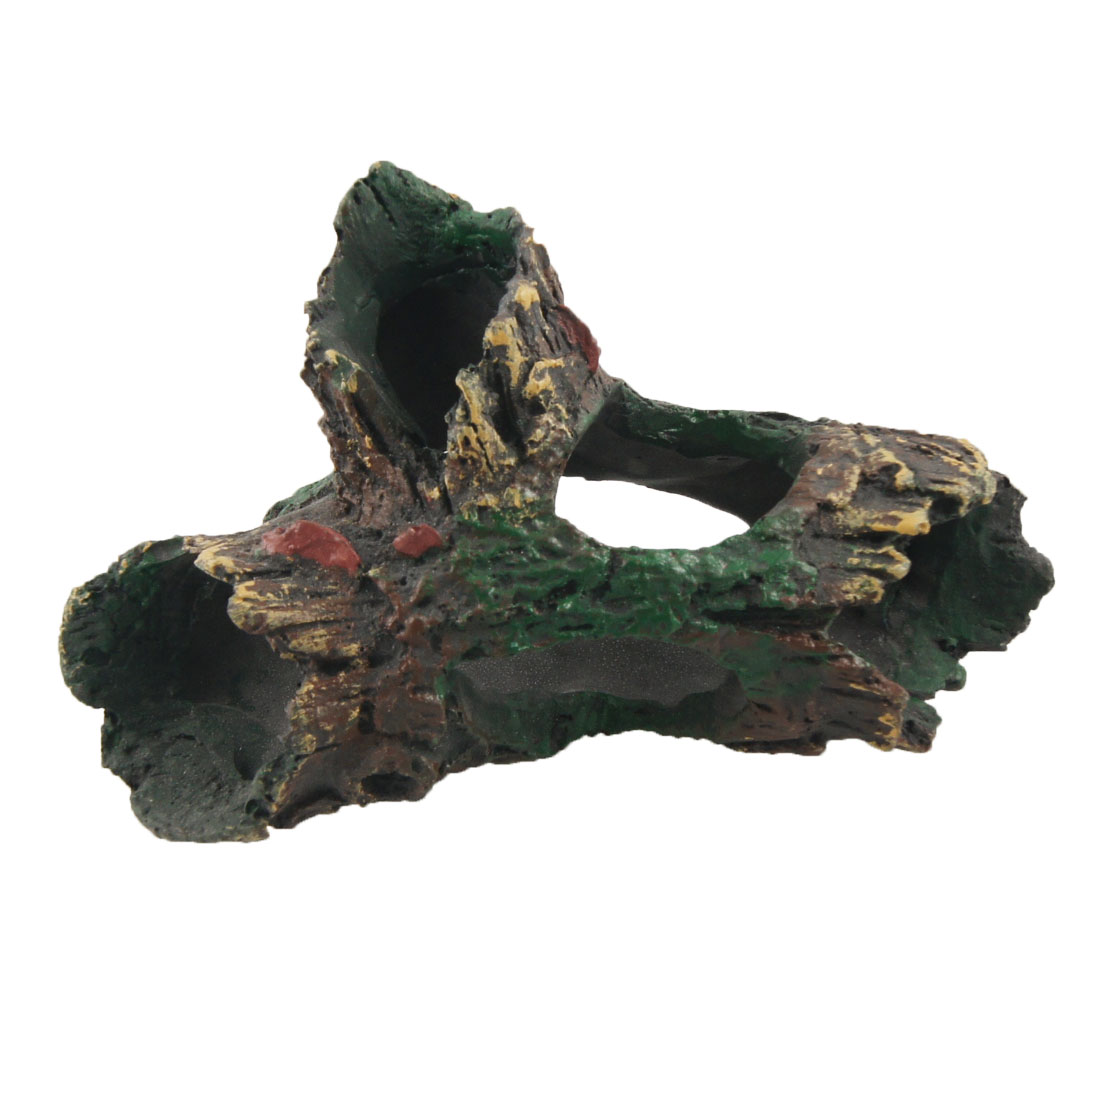 Hollowed Out Tree Stem Shape Aquatic Resin Decor for Fish Tank